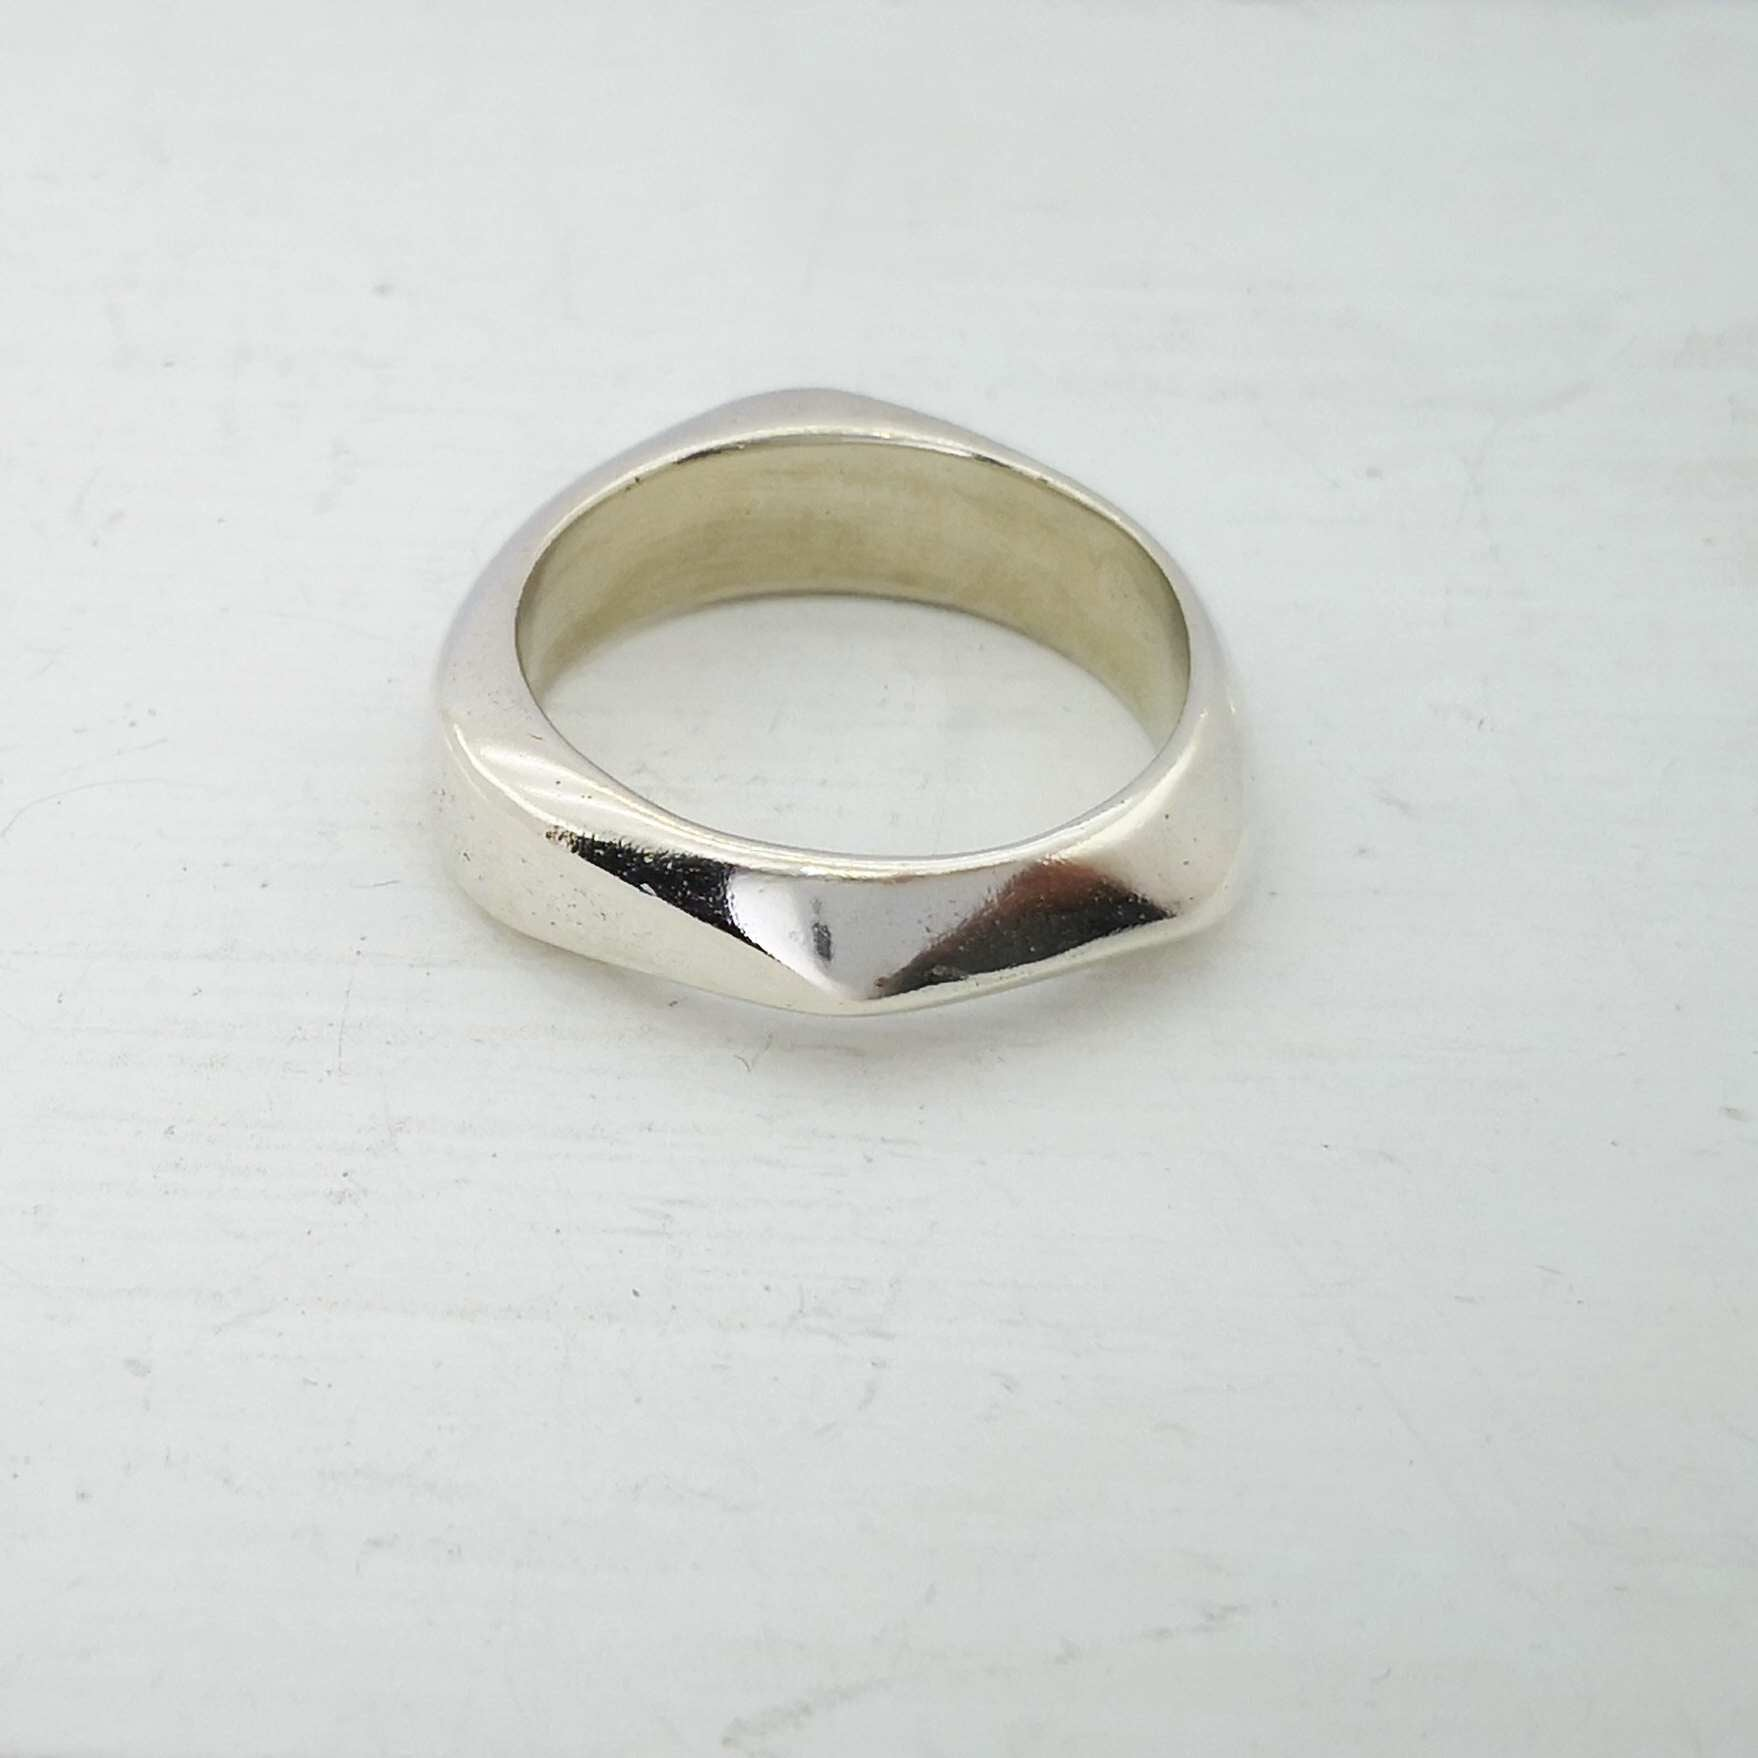 Angled ring in solid silver by Emily Efford.